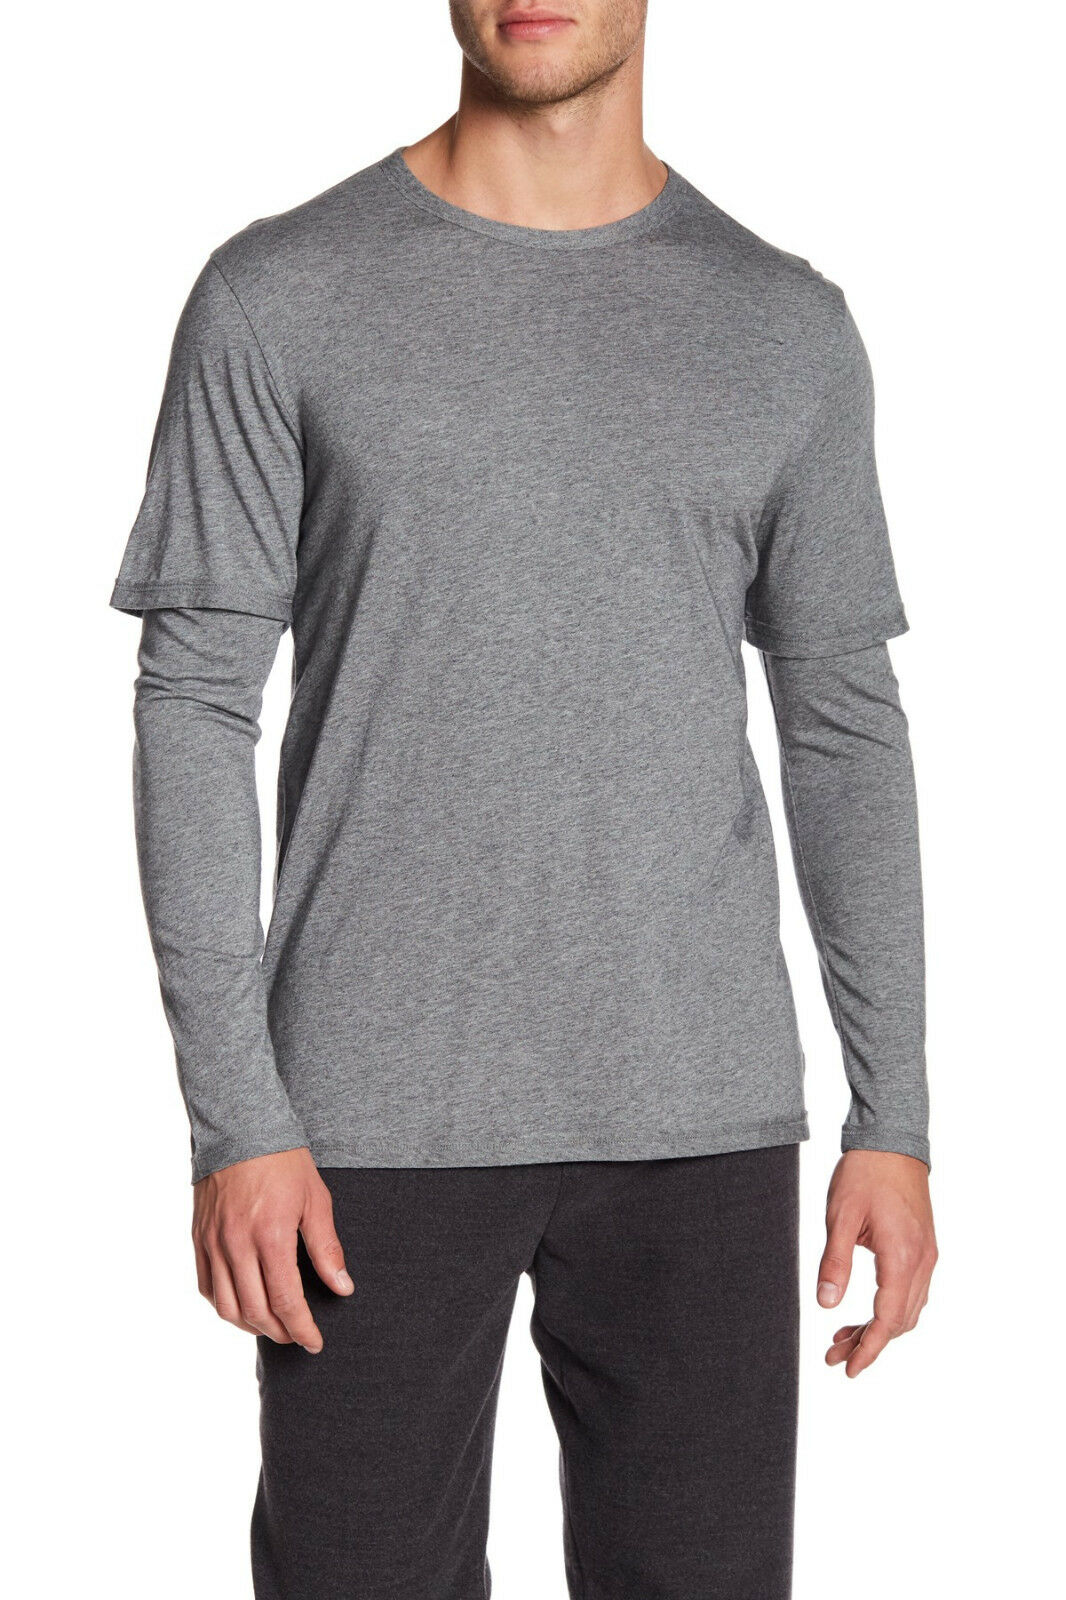 VME210 DOUBLE NWT VINCE DOUBLE VME210 LAYER SLEEVE Uomo TEE SIZE L in G  125 63486e